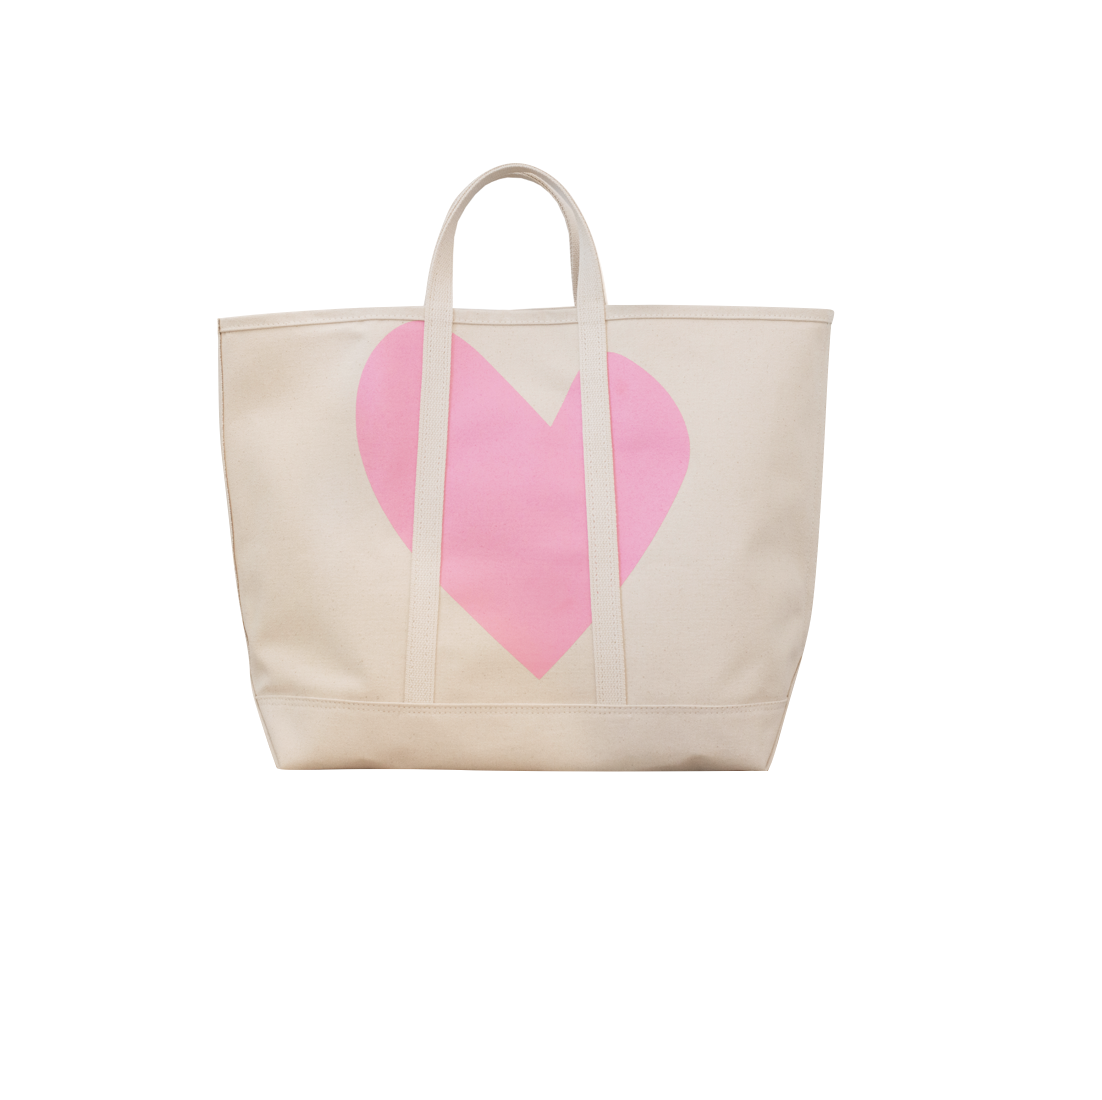 Bubble Pink Imperfect Heart Small Canvas Tote